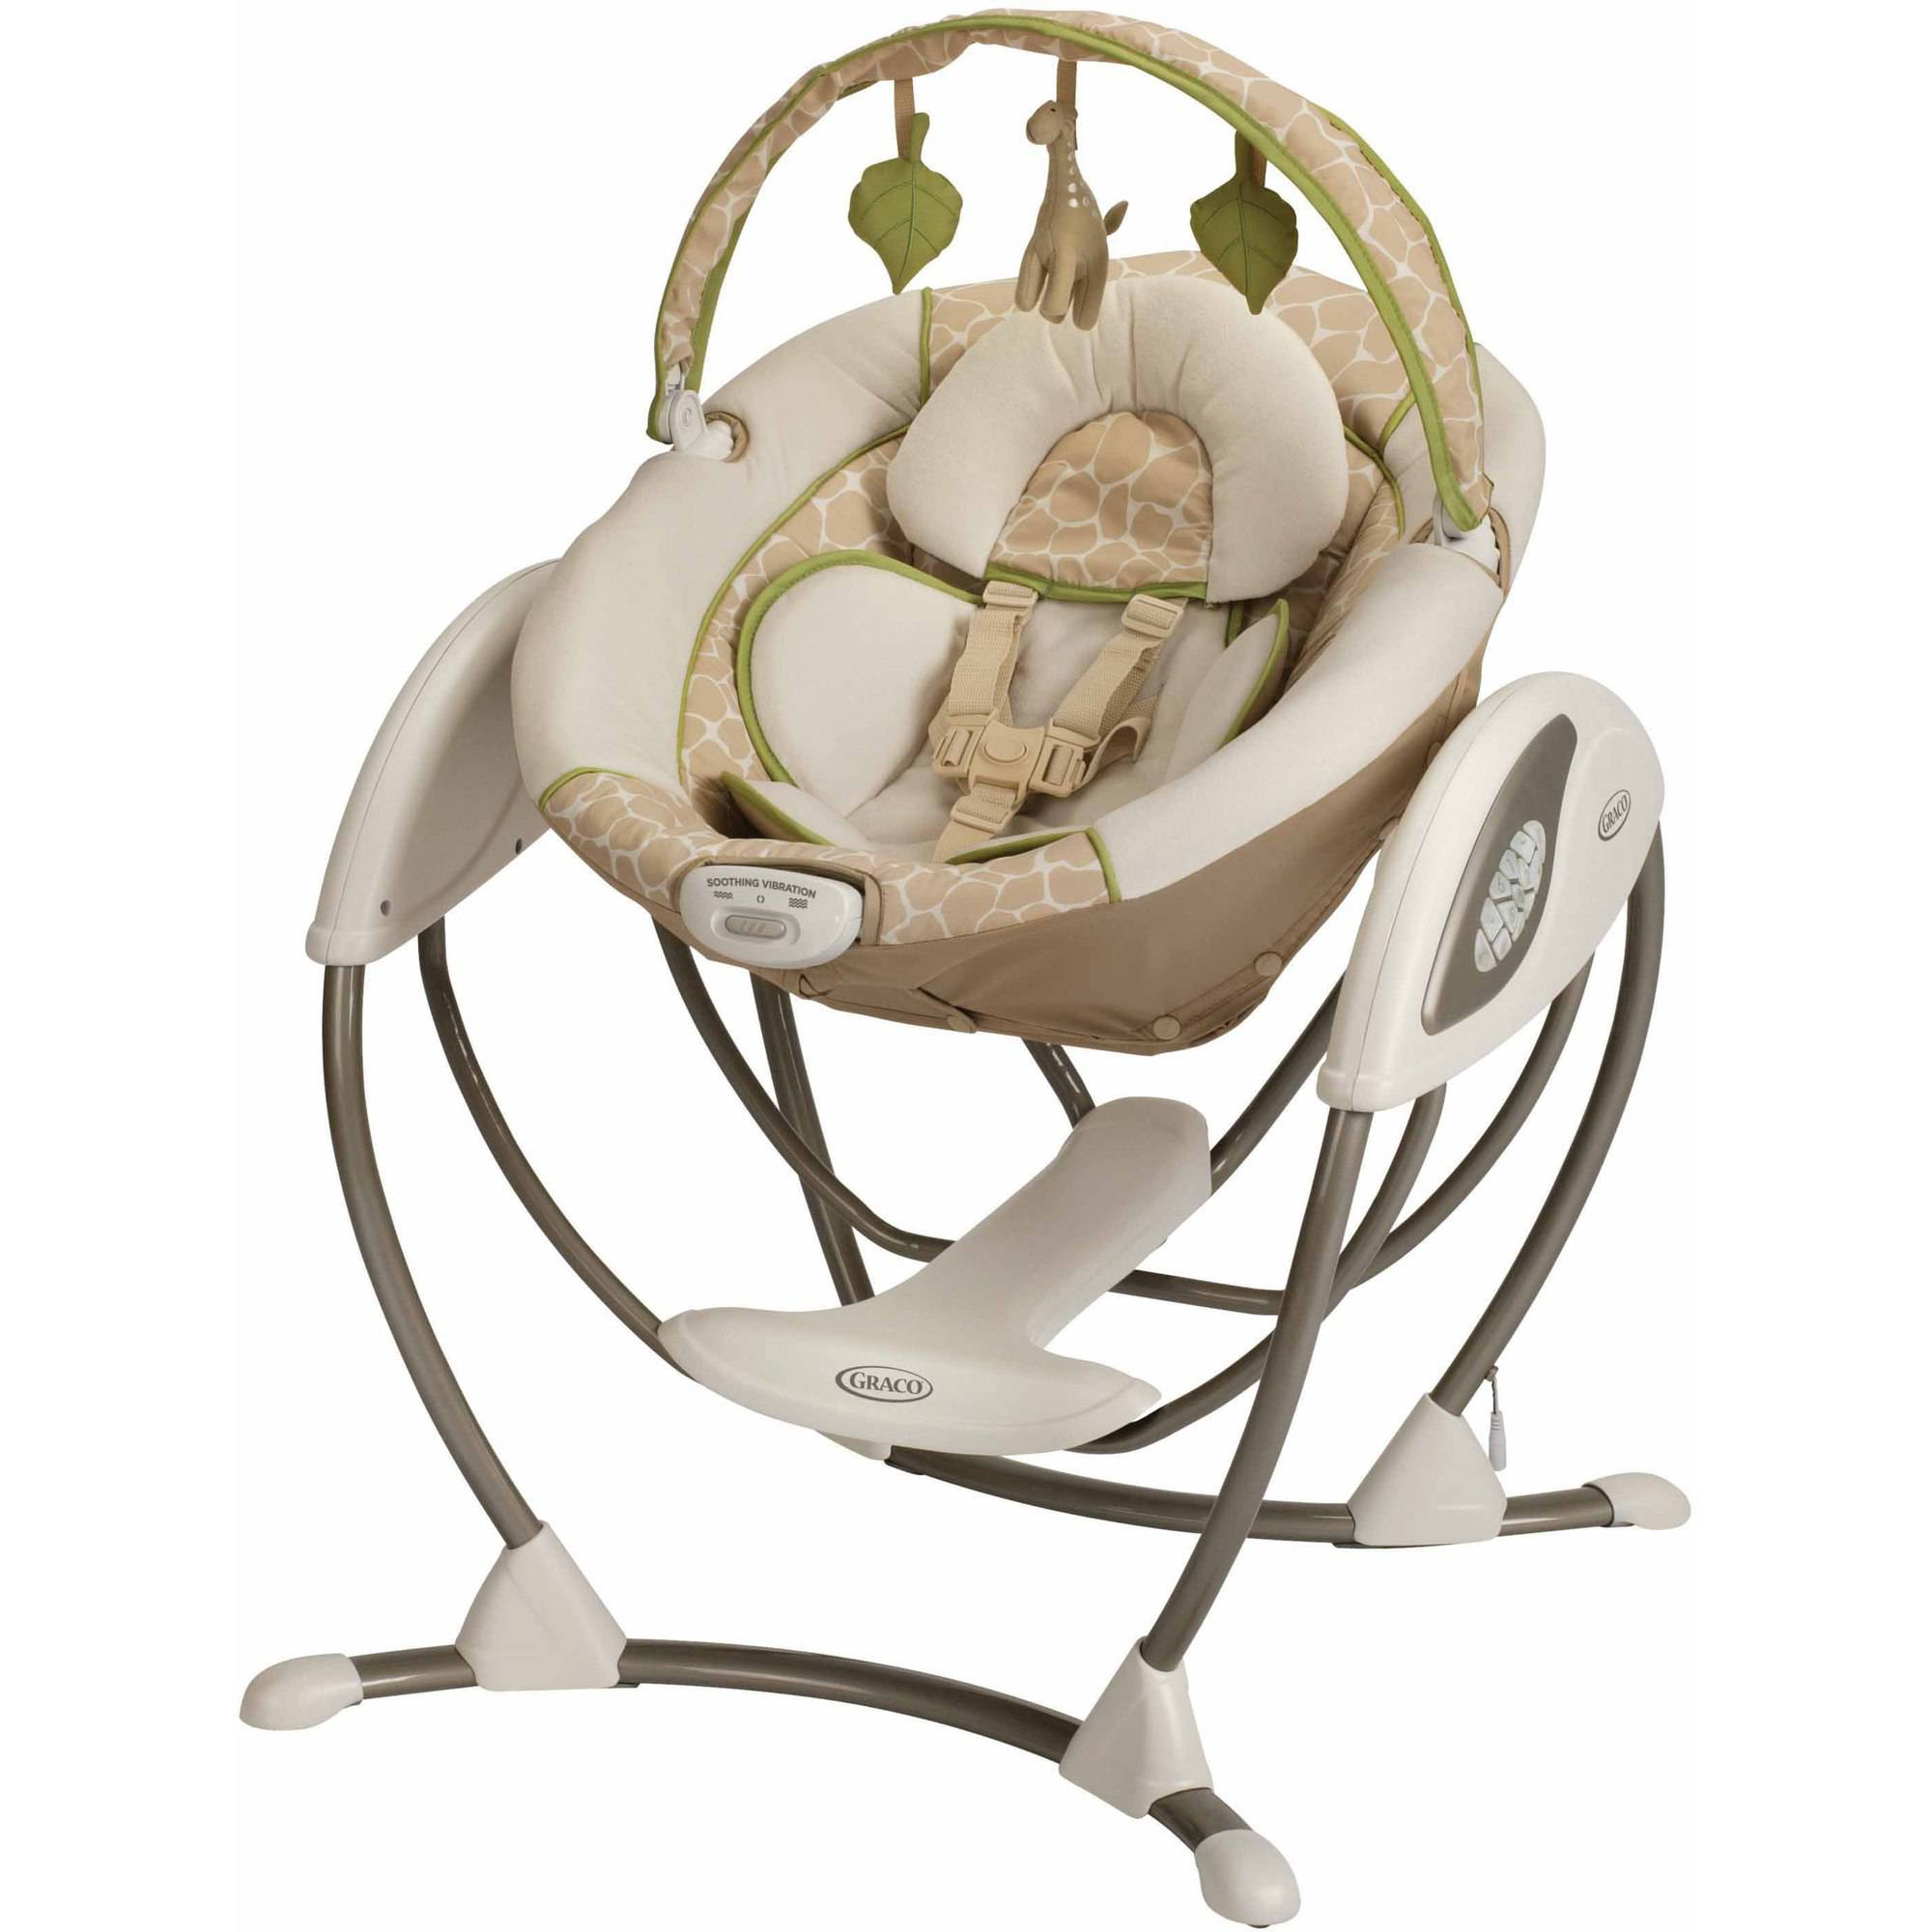 Graco Glider LX Gliding Swing, Raffy